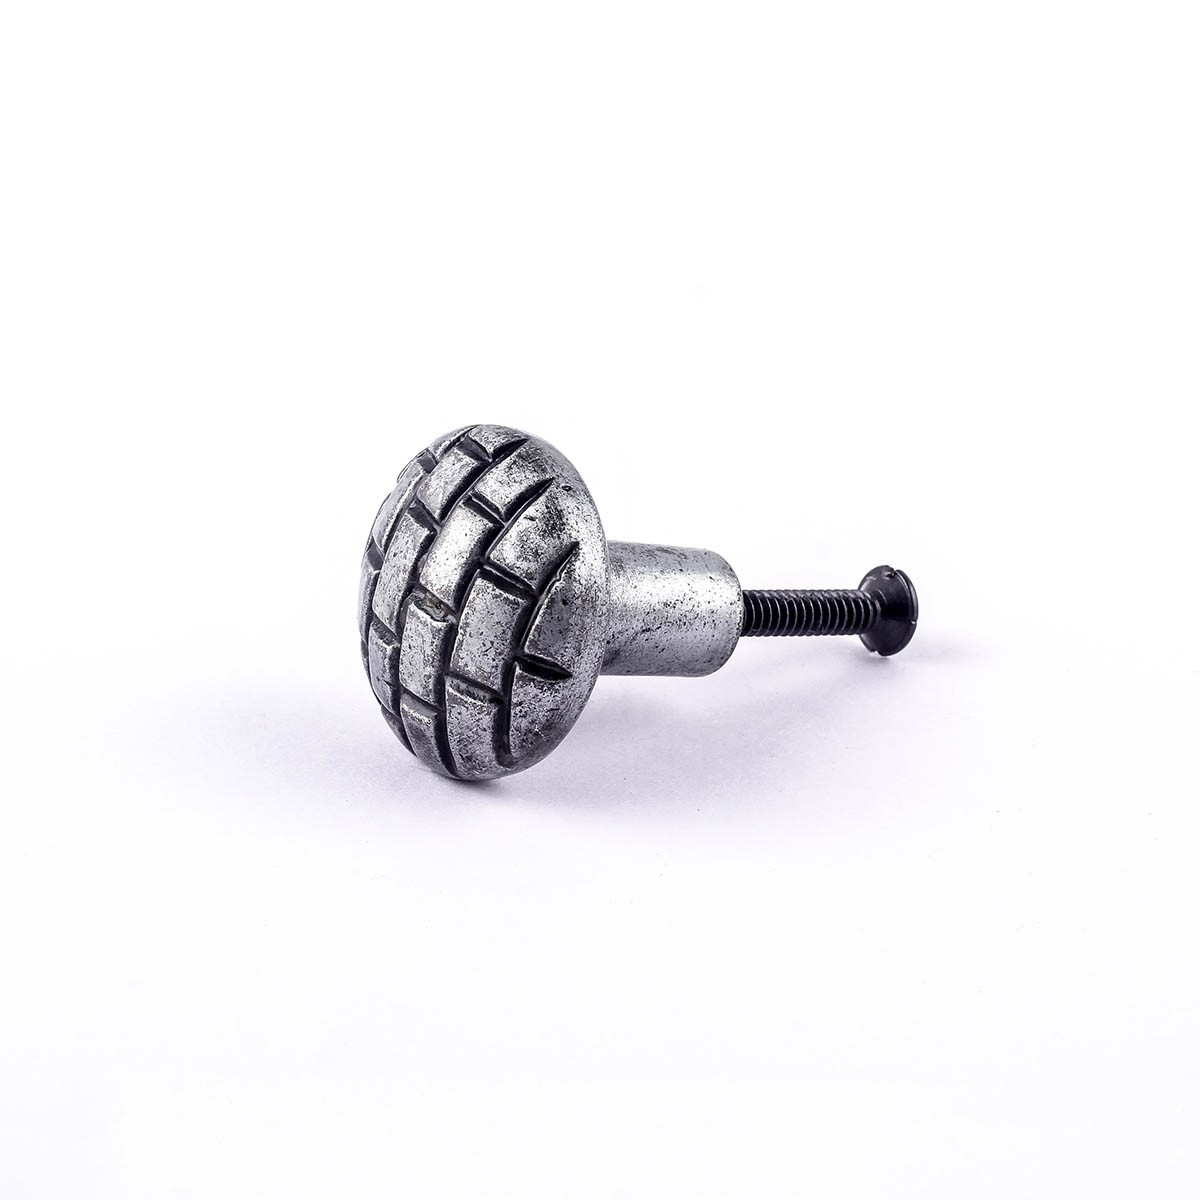 Iron Cabinet Knob Round Pewter Finish Brick Design Cabinet Hardware Round Cabinet Knobs Vintage Dresser Hardware Knobs Antique Cabinet Knobs